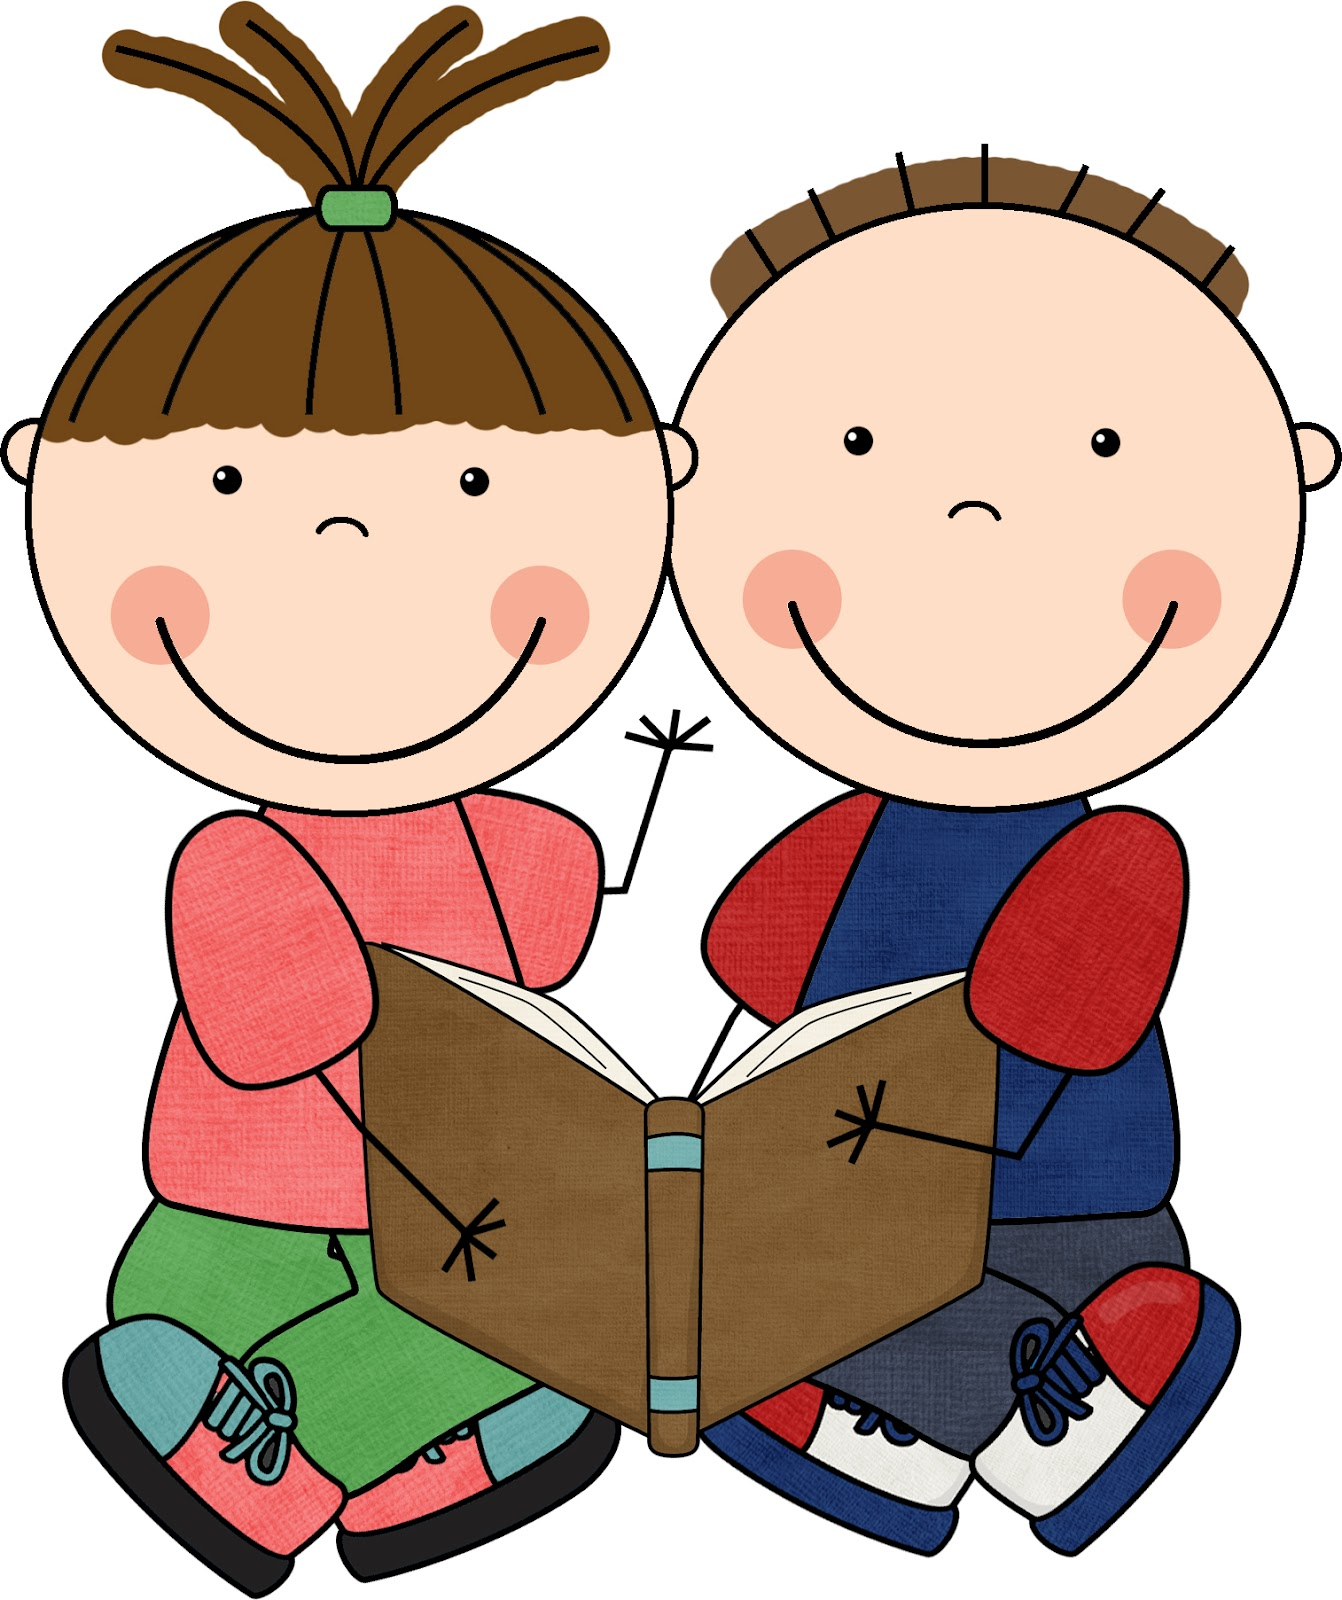 Imagination clipart homework To Clipart To Someone Download